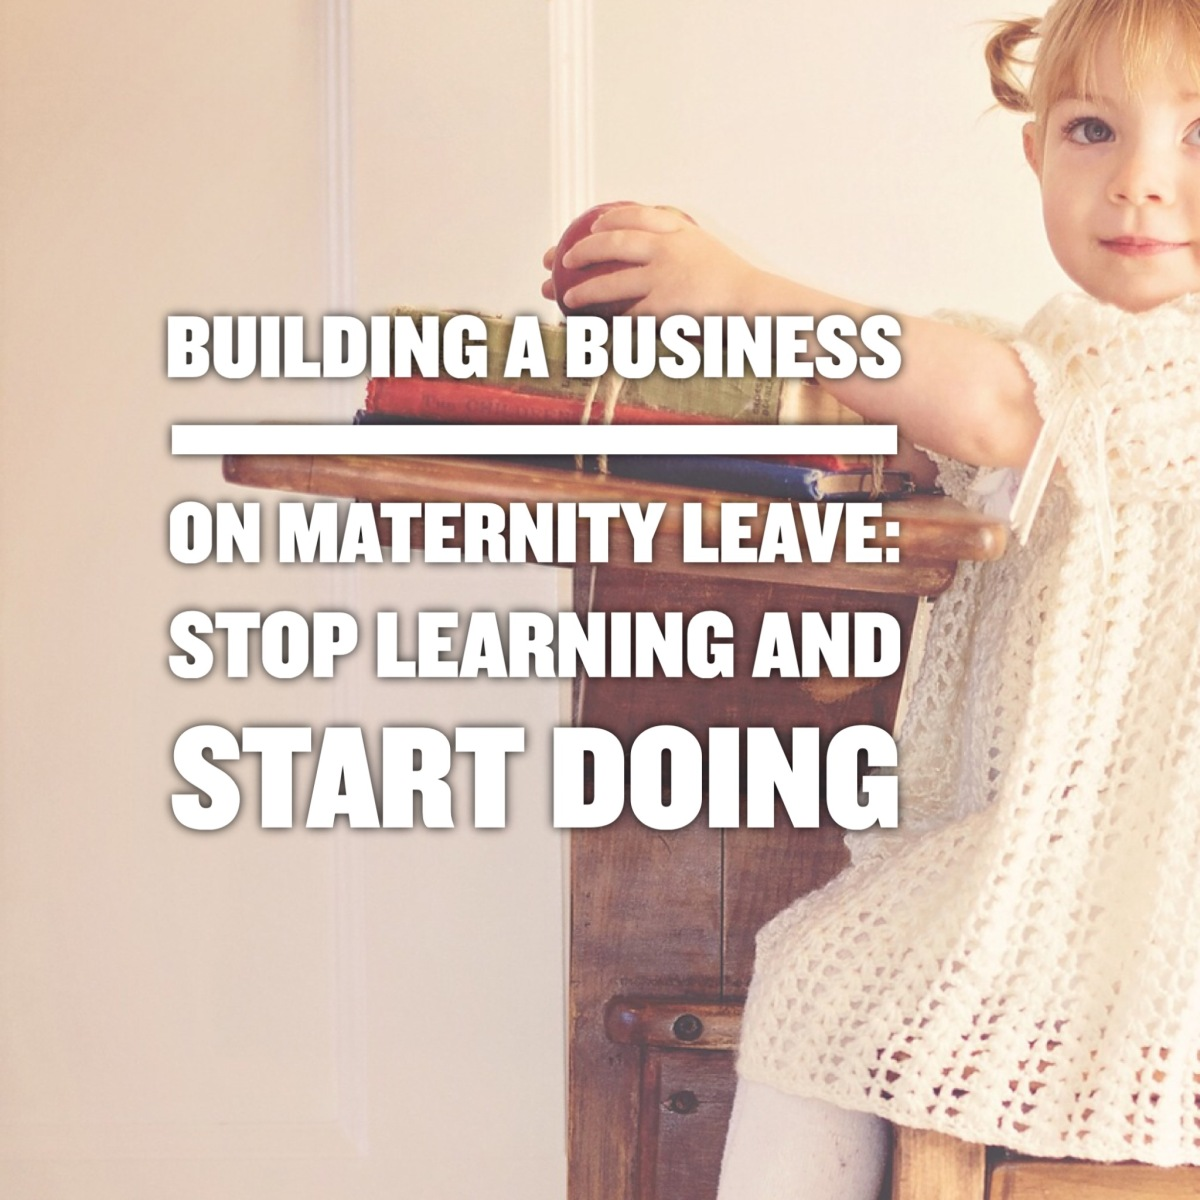 Building a Business on Maternity Leave:  Know When to Stop Learning and Start Taking Action.